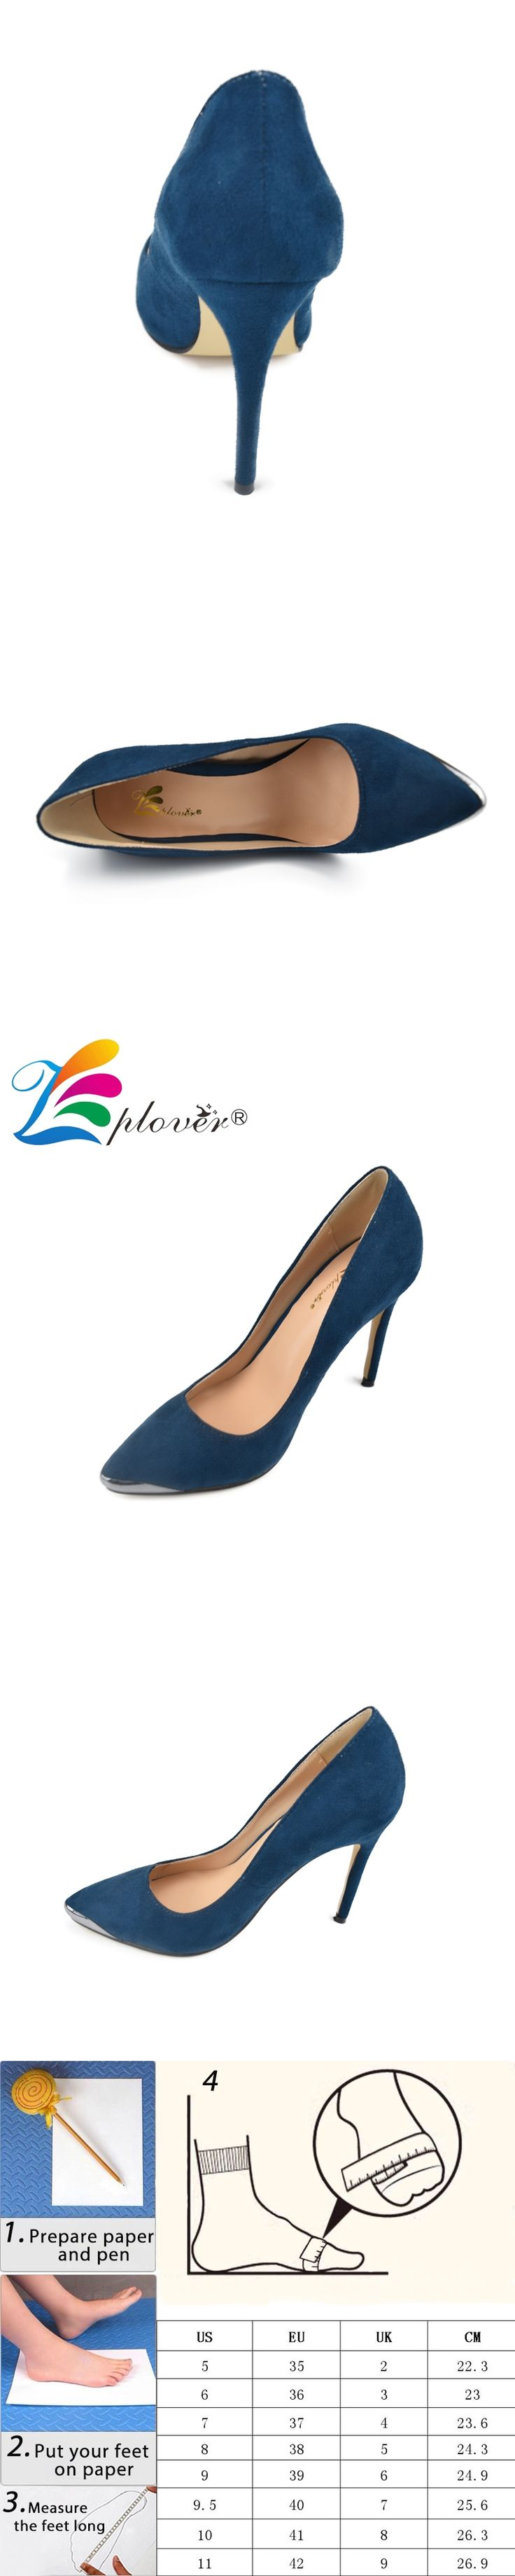 Zplover High Heels Shoes Woman Pumps Sexy Fashion Women Shoes High Quality Sapato Feminino Pointed Toe Plus Size Ladies Shoes